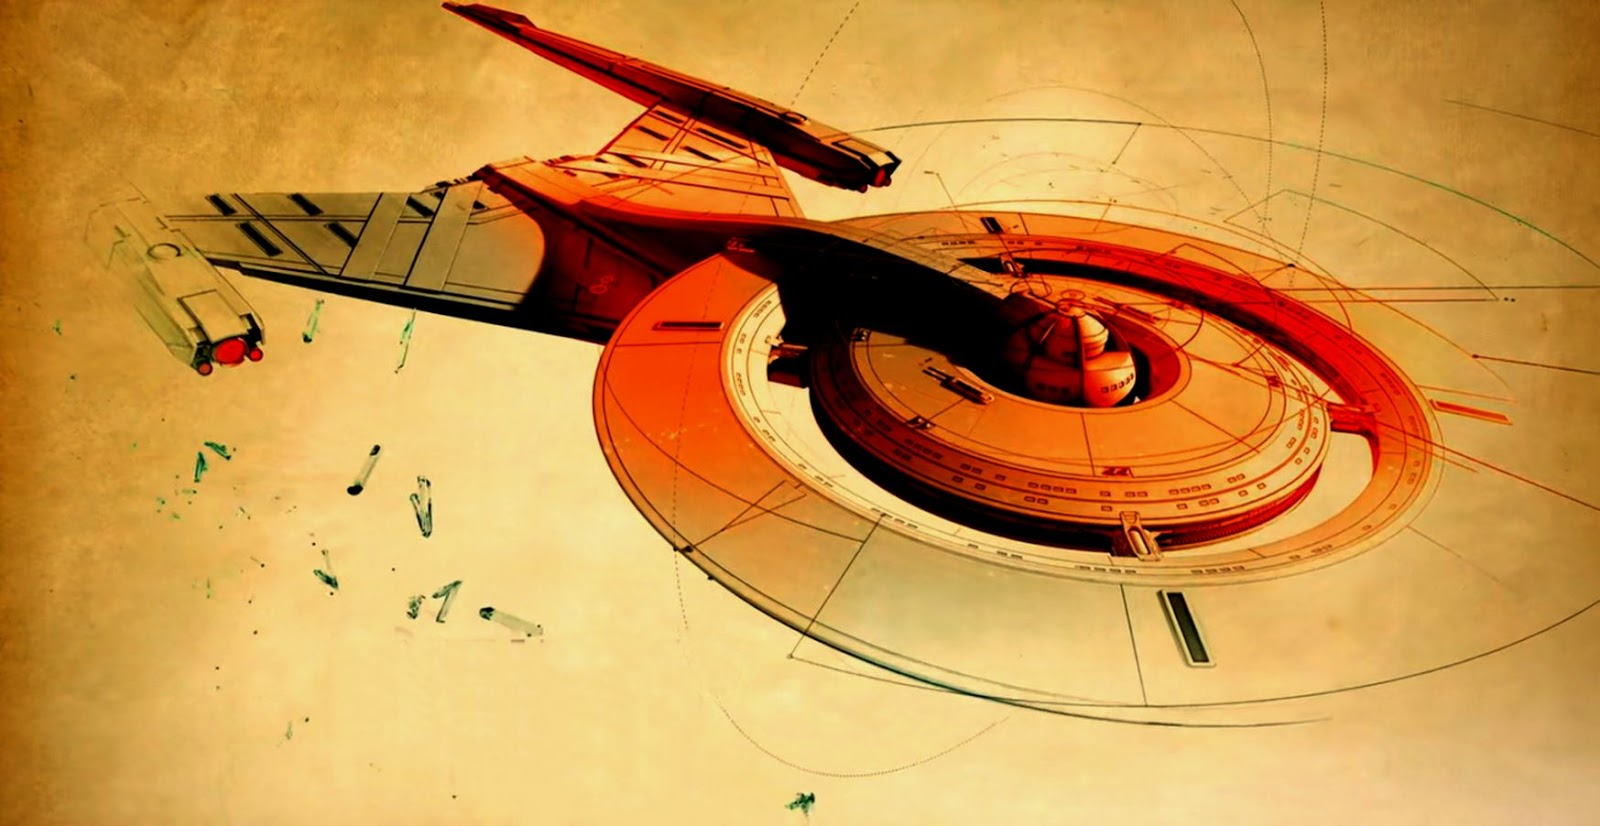 Star Trek Wallpaper Free View Wallpapers